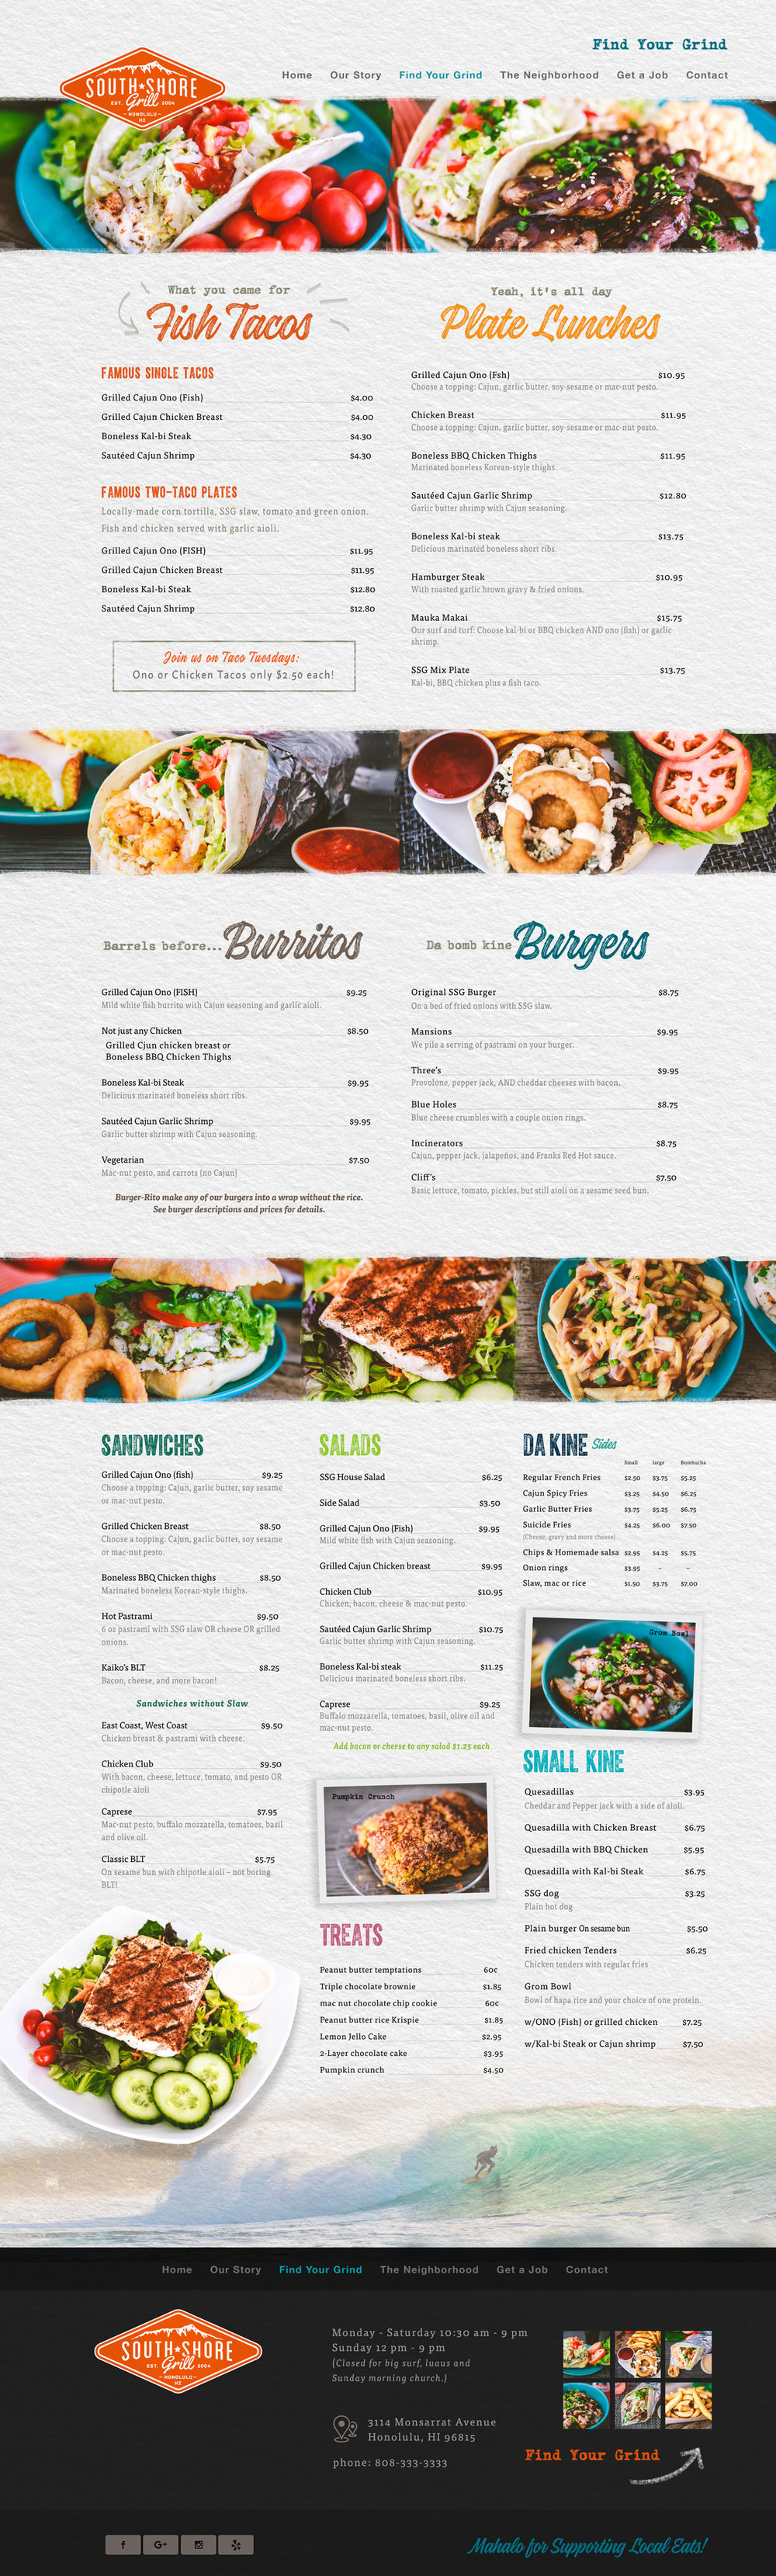 South-Shore-Grill-Menu-Design-A.jpg